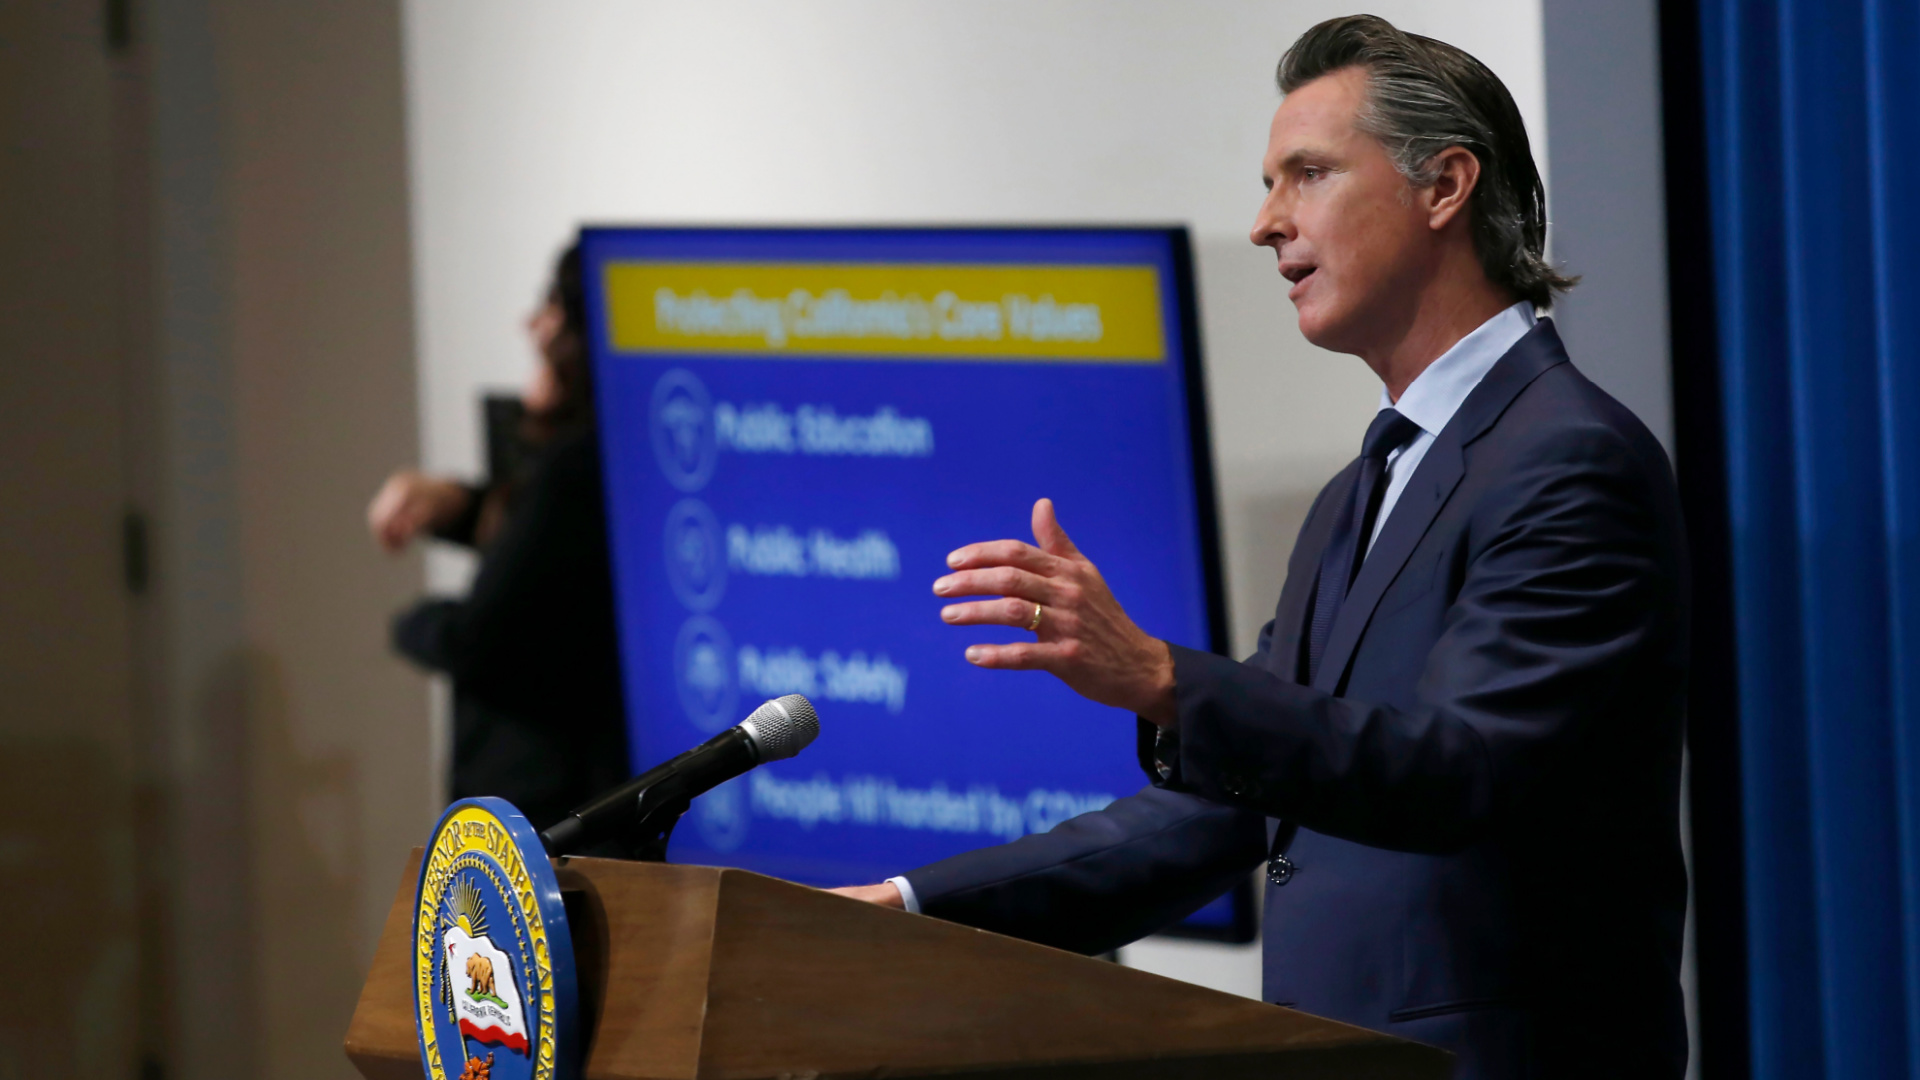 Gov. Gavin Newsom discusses his revised 2020-2021 state budget during a news conference in Sacramento on May 14, 2020. (AP Photo/Rich Pedroncelli, Pool)